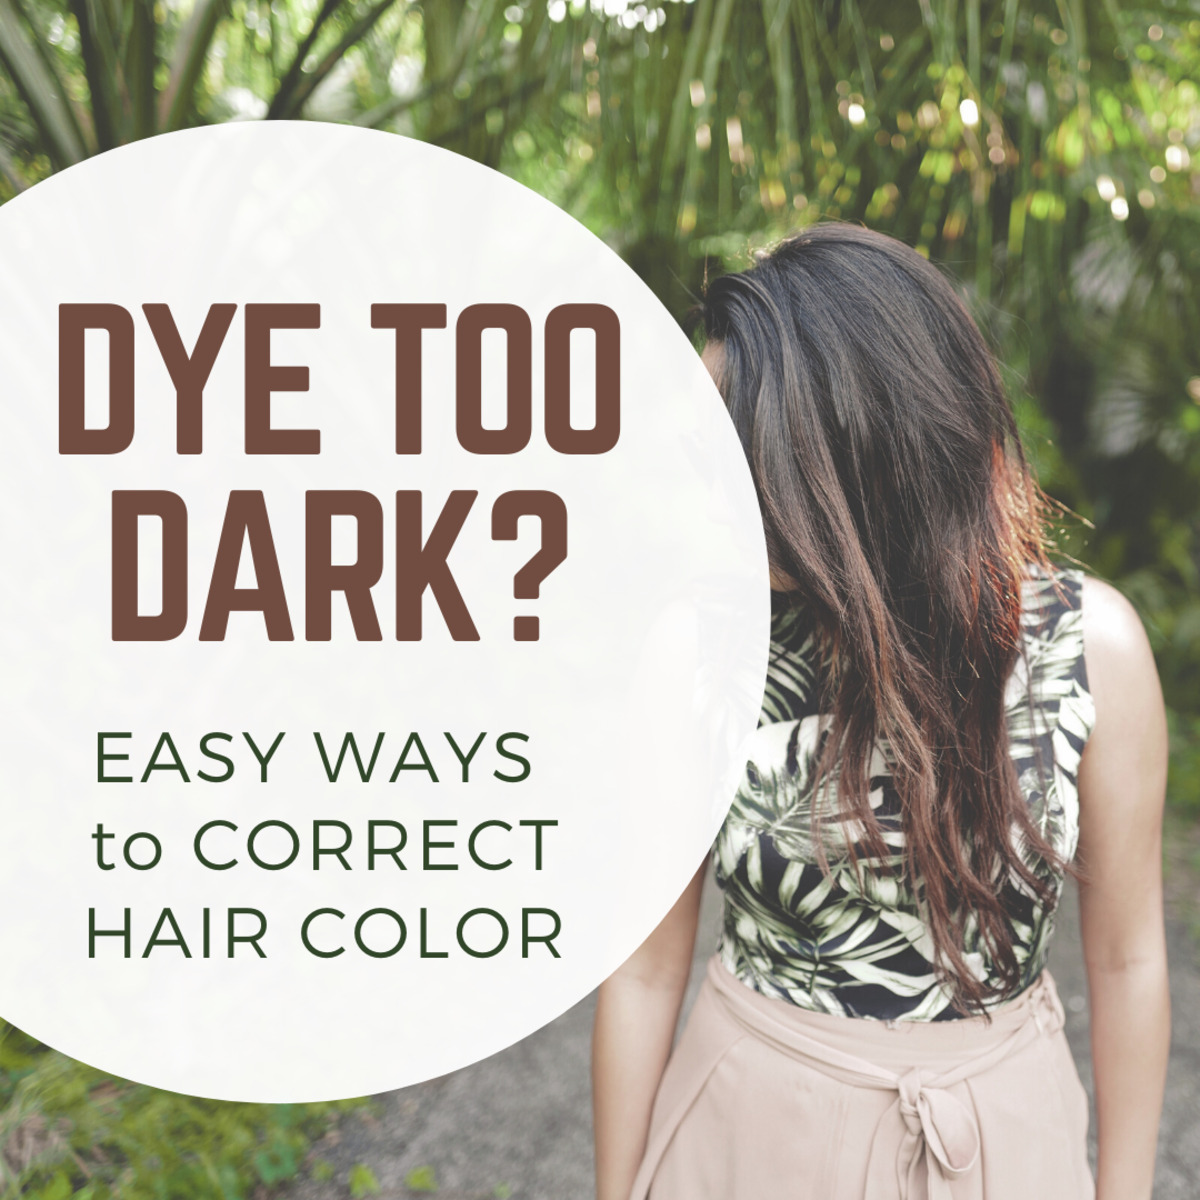 Hair Color Too Dark? How to Correct This (Without Bleach)